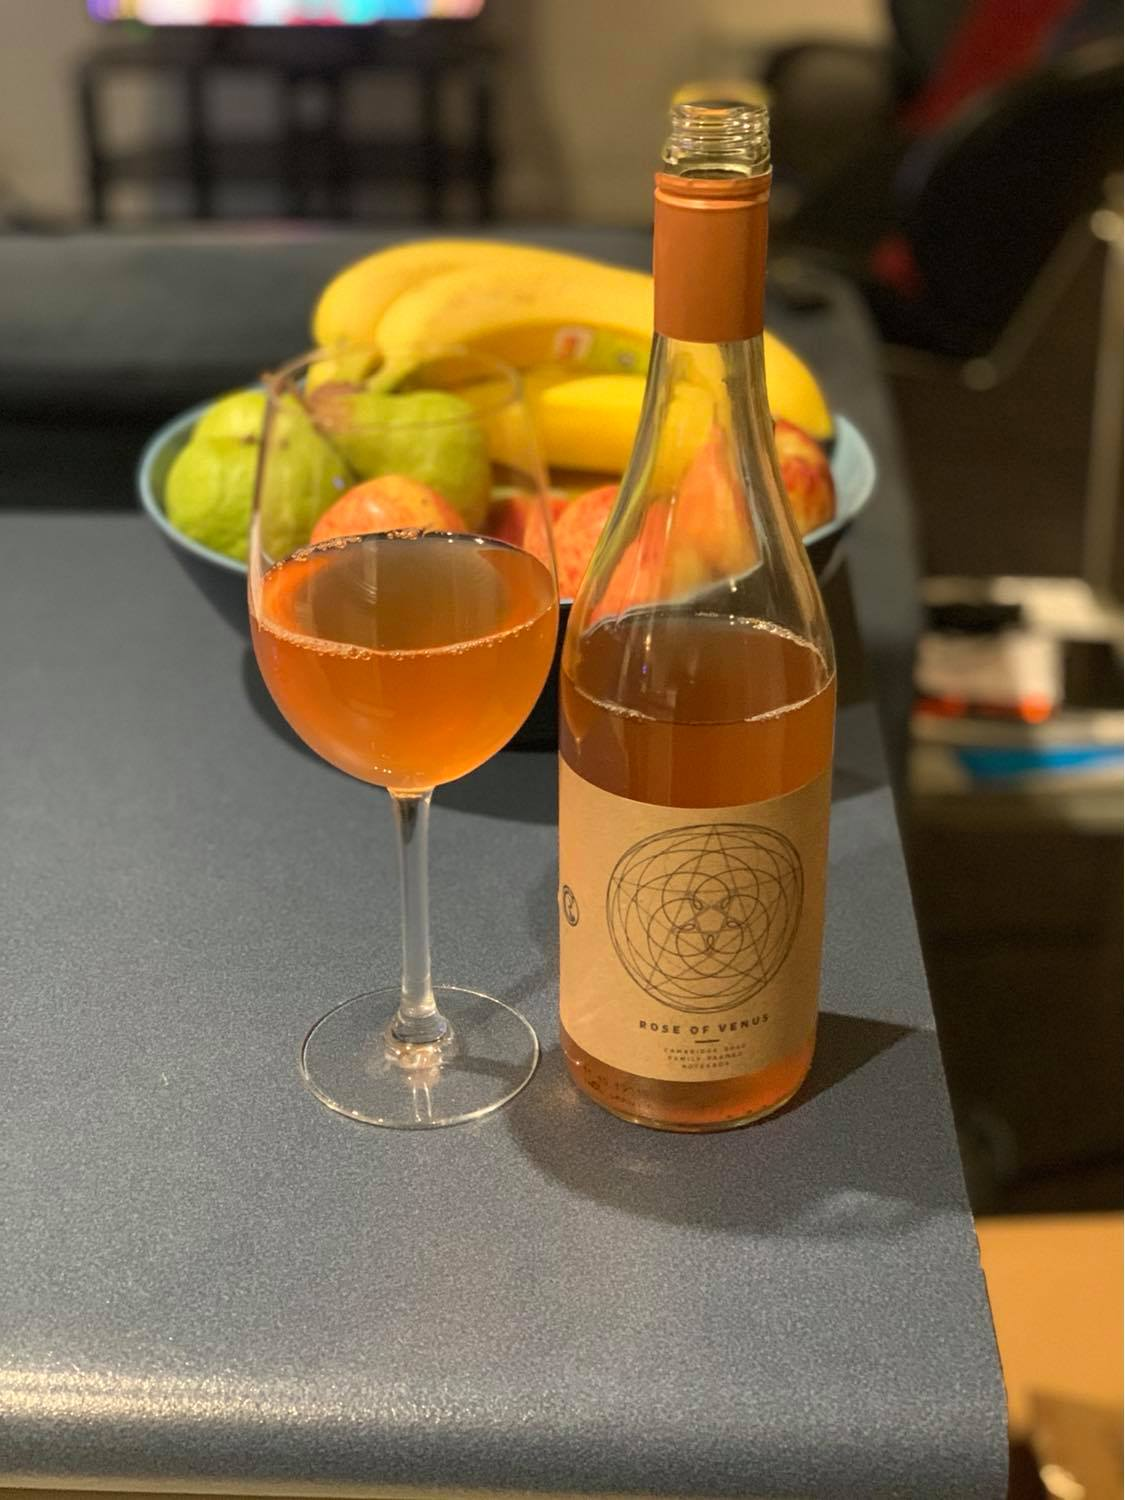 Cambridge Road Rosé of Venus 2019 (4/5 ?⭐)